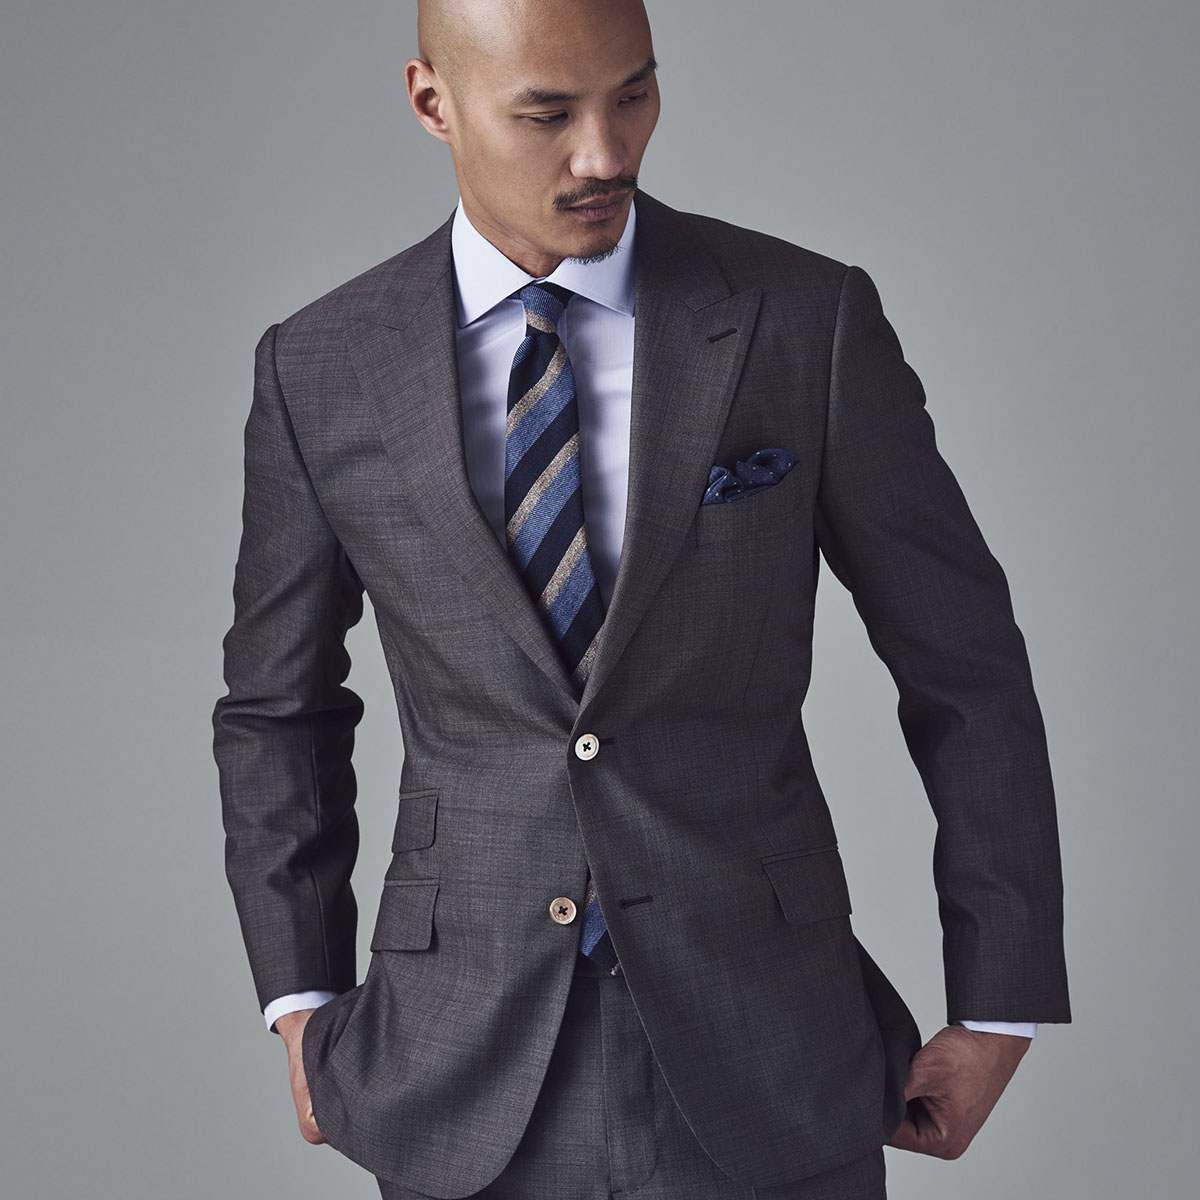 jhilburn-custom-suits.jpg